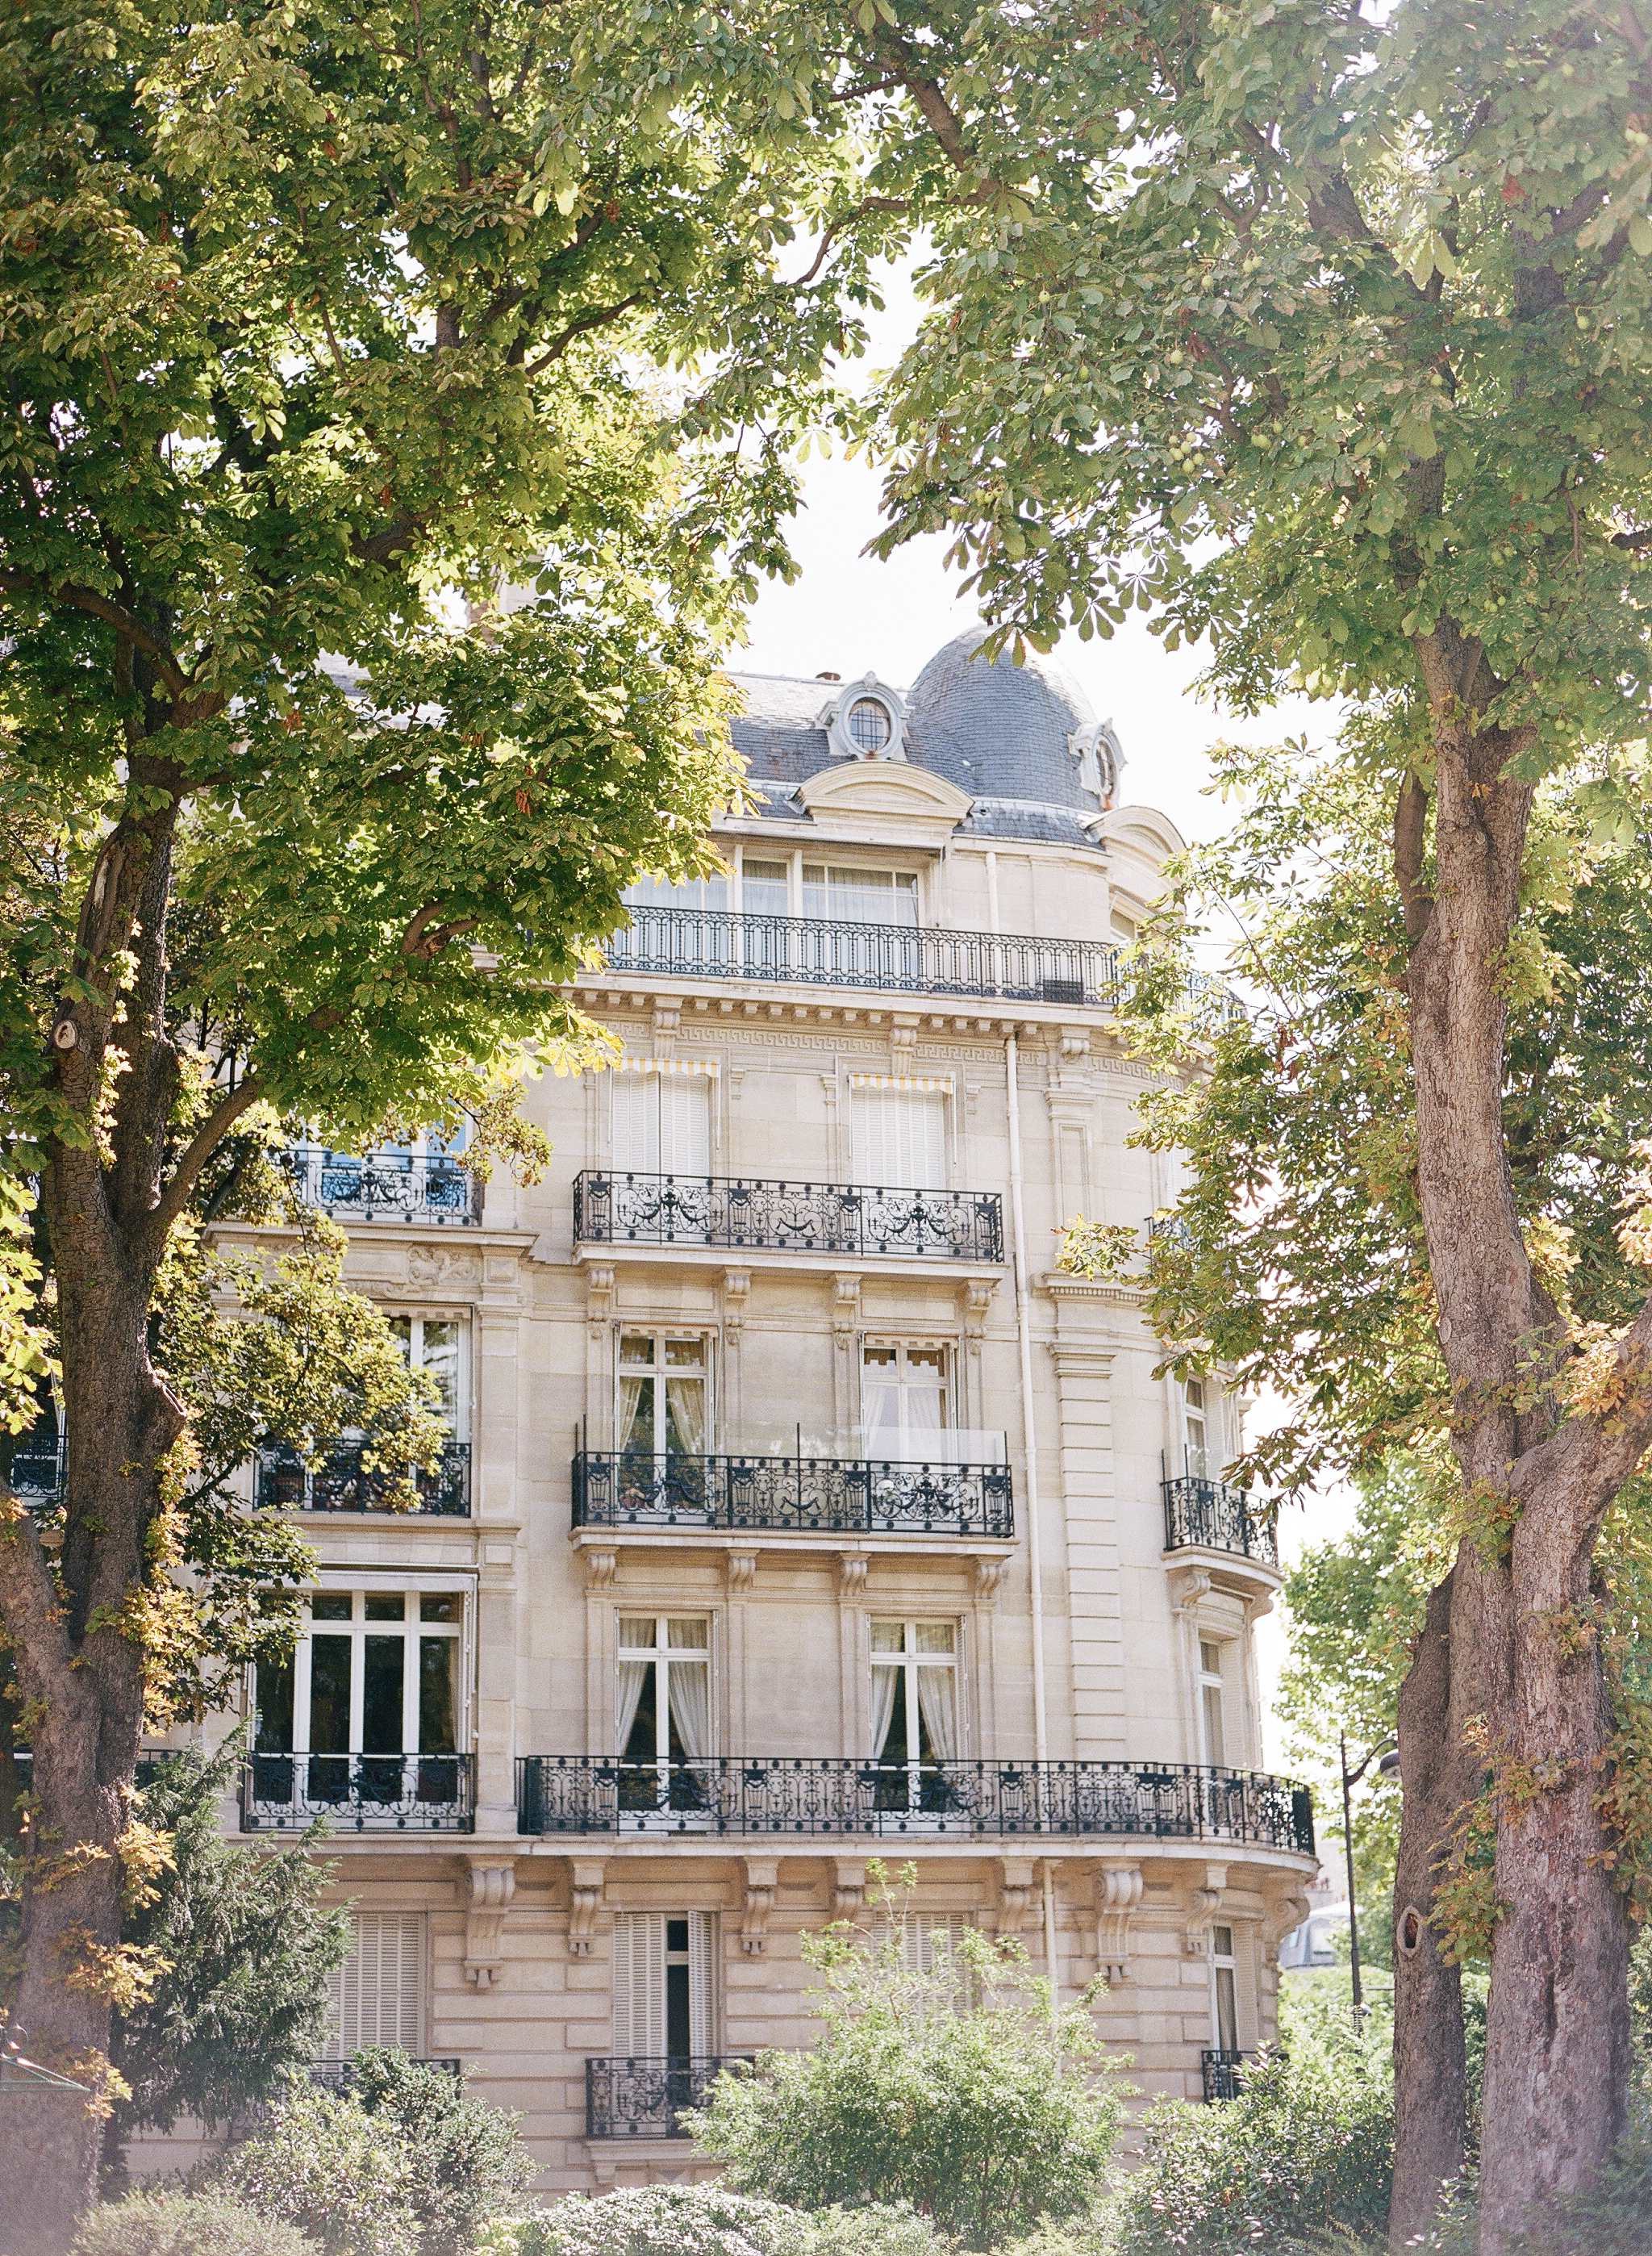 Classic Parisian architecture framed by summer trees; photo by Sylvie Gil